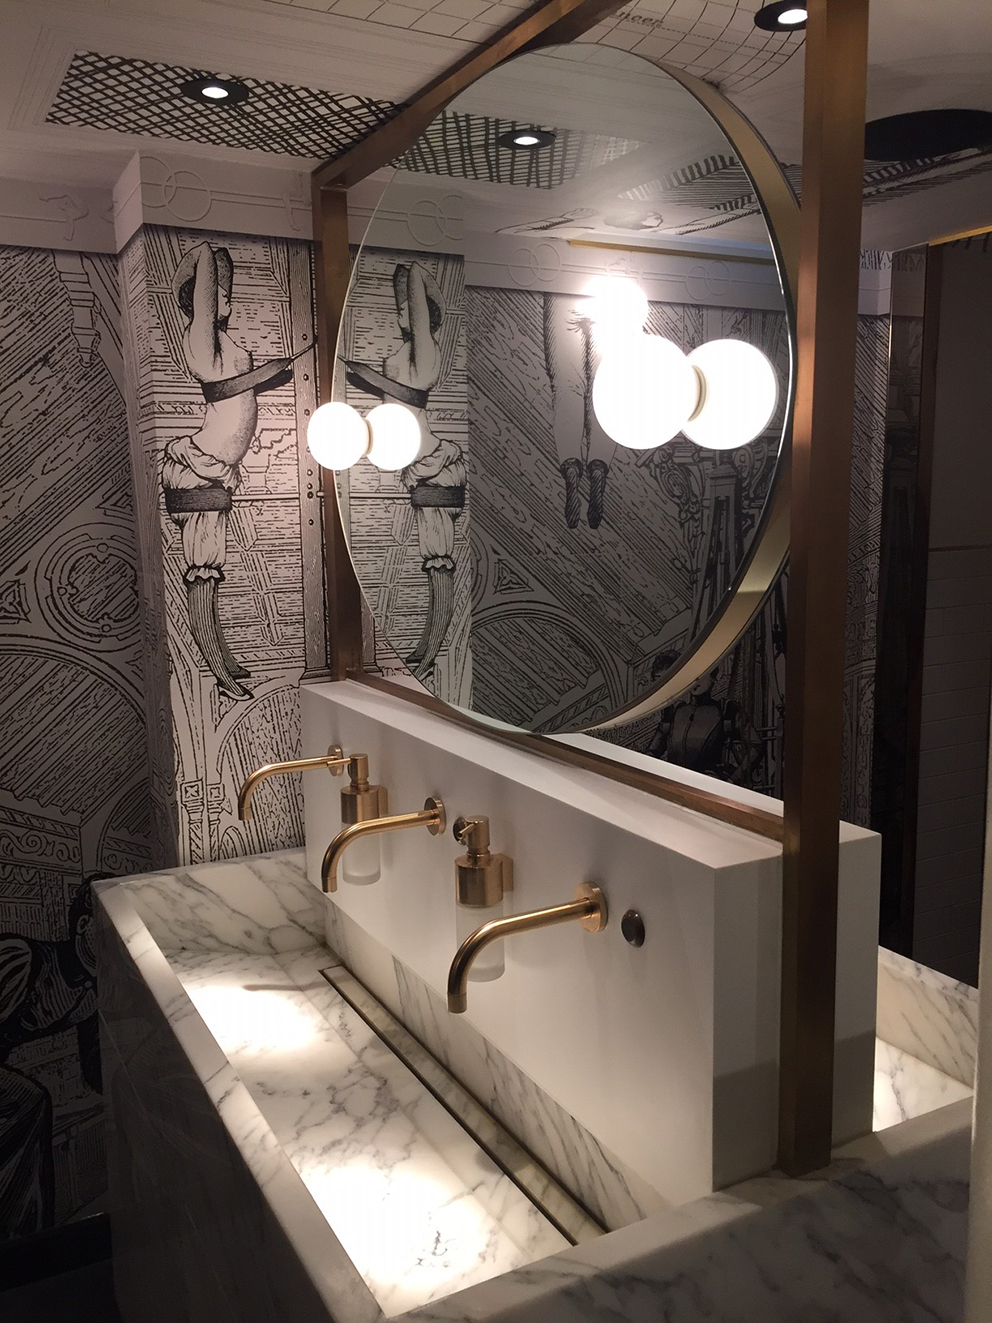 French For Pineapple Blog - Dream Bathroom Picks With C.P Hart